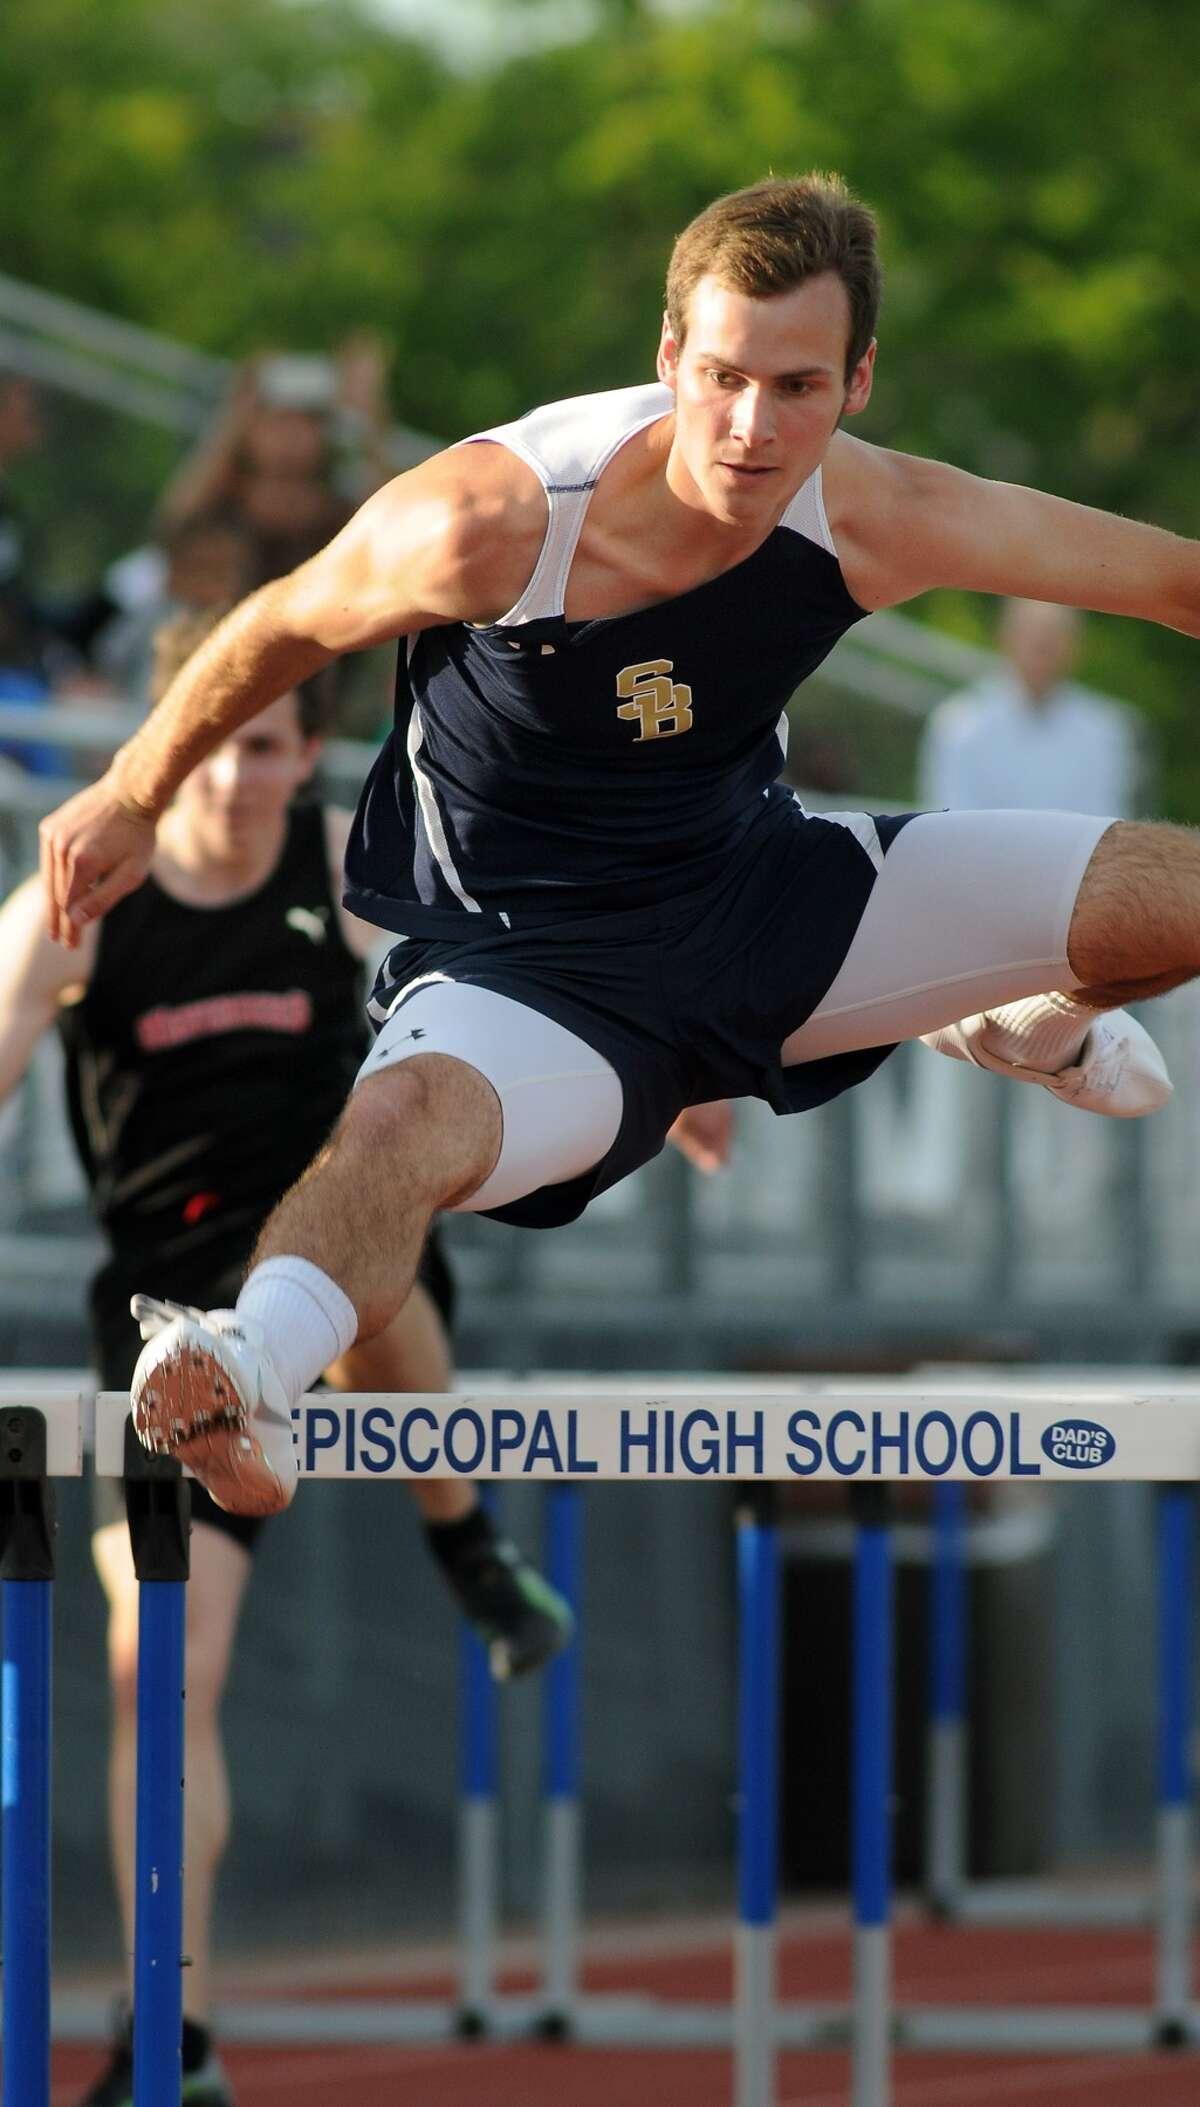 Second Baptist's Parker Johnson competes in the Boys 110 Meter Hurdles at the 2013 Episcopal High School Relays. Freelance photo by Jerry Baker